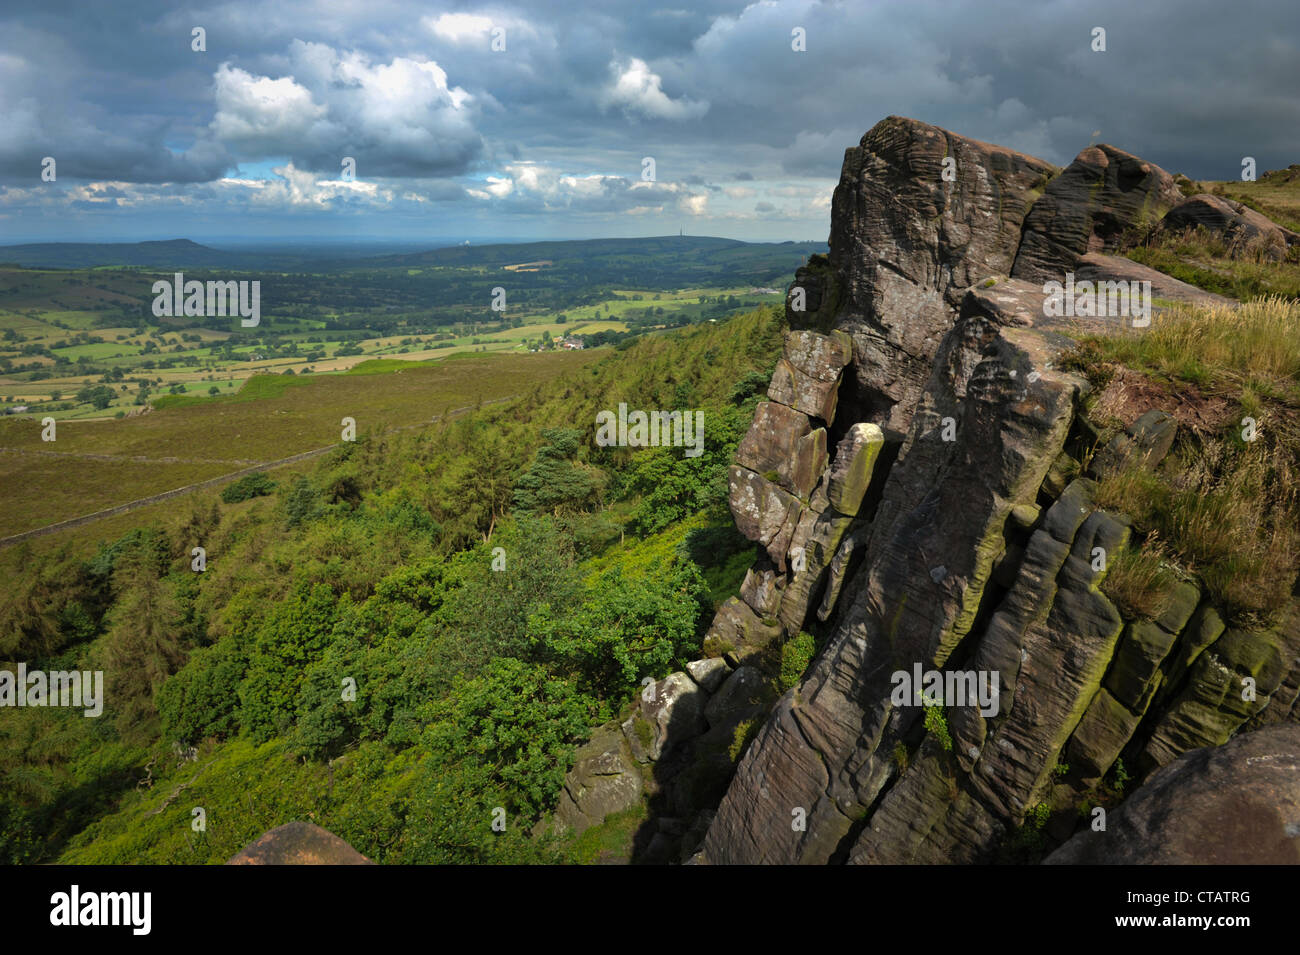 Gritstone rock formations at the Roaches, Peak District National Park, England. Views across North Staffordshire - Stock Image